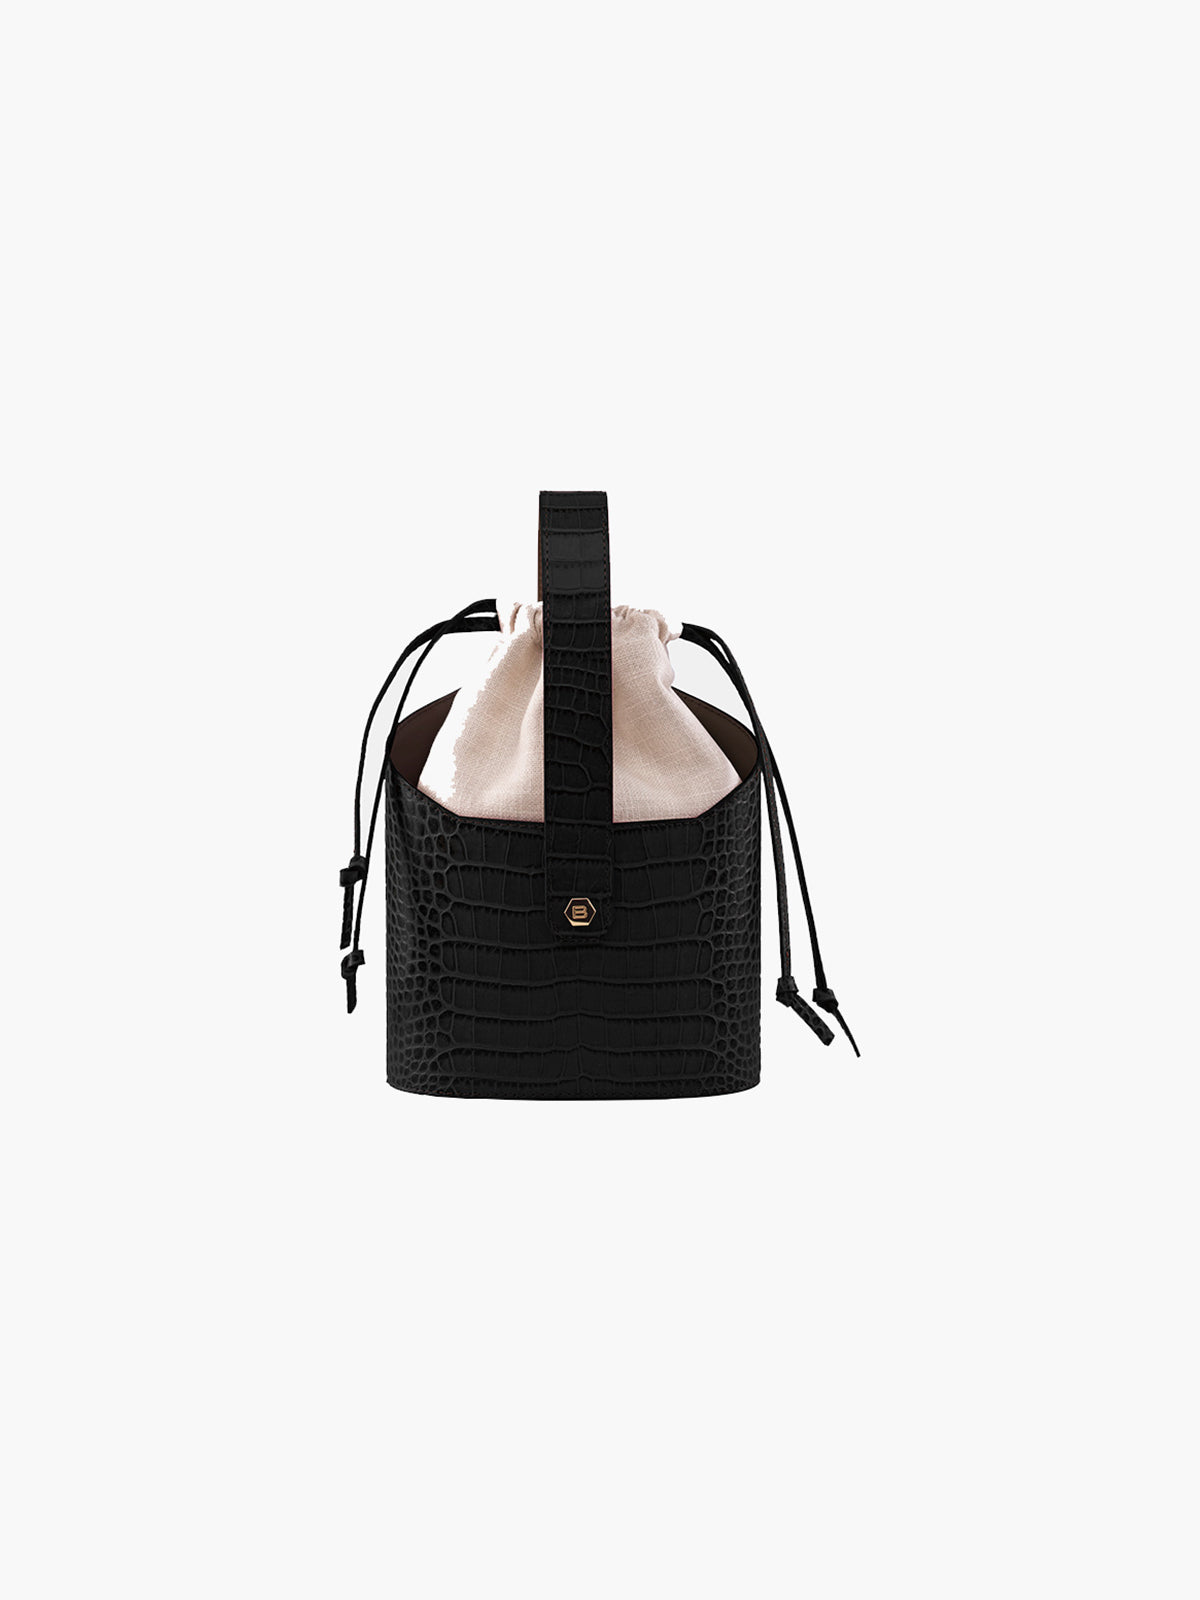 Xienna Bag | Croc Black